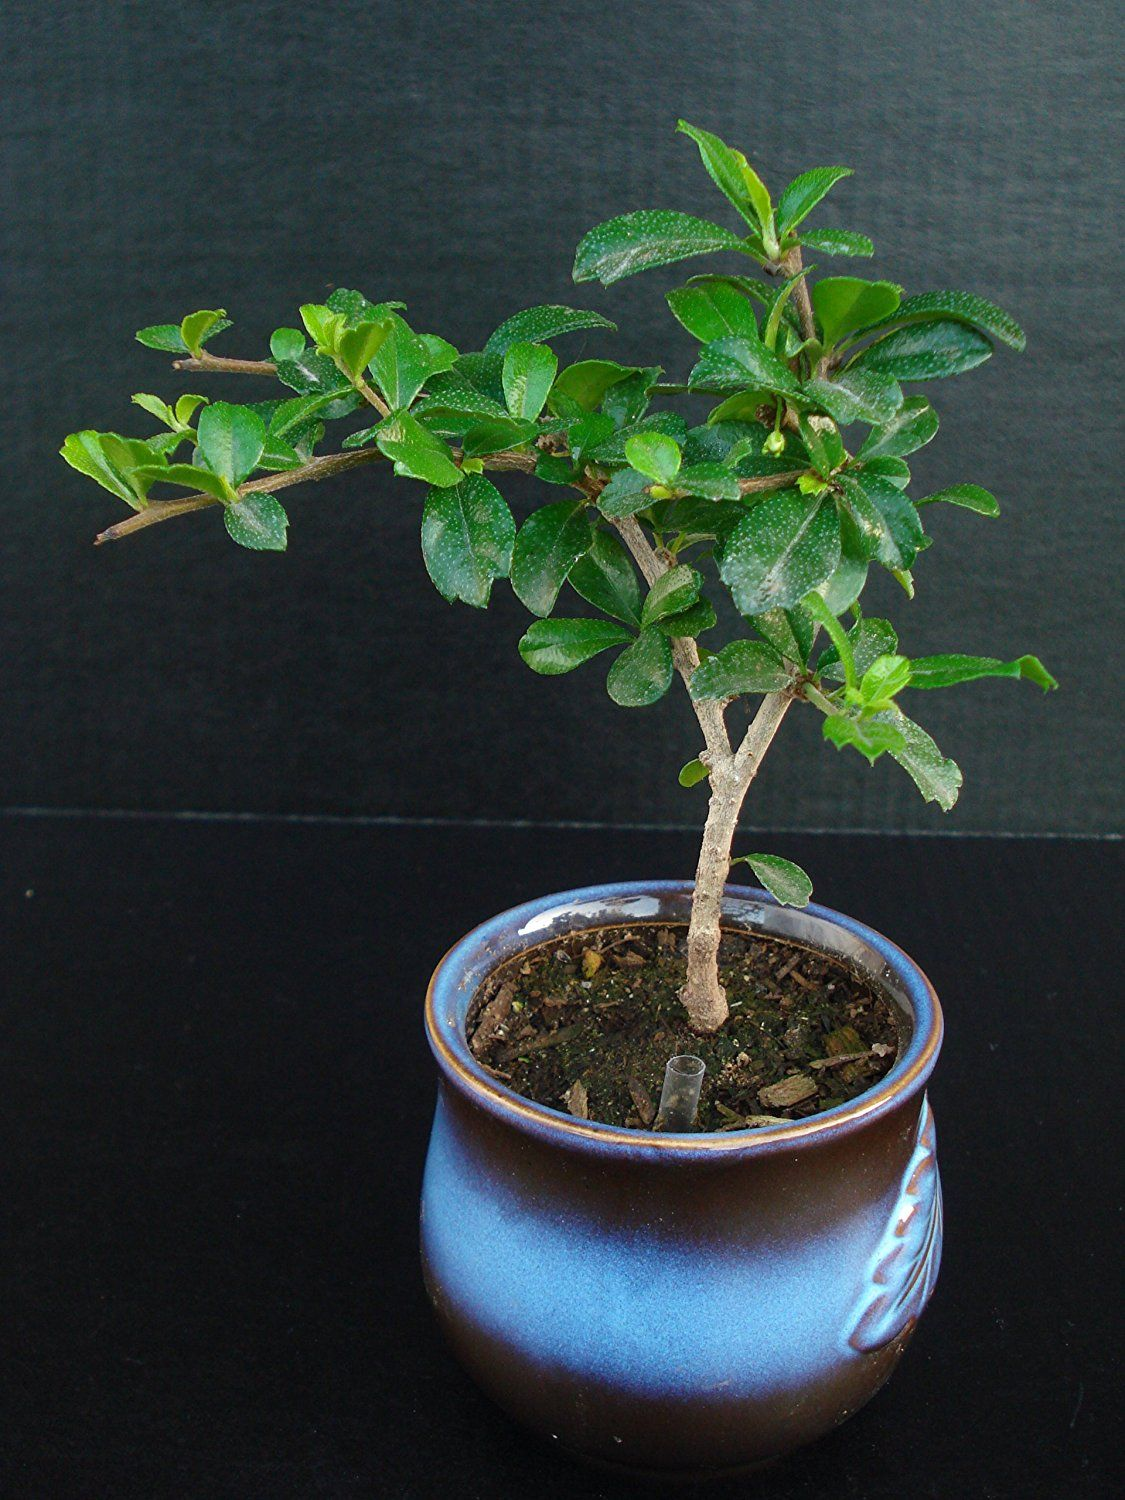 How to bonsai trees for beginners - Best Indoor Bonsai Tree For Beginners